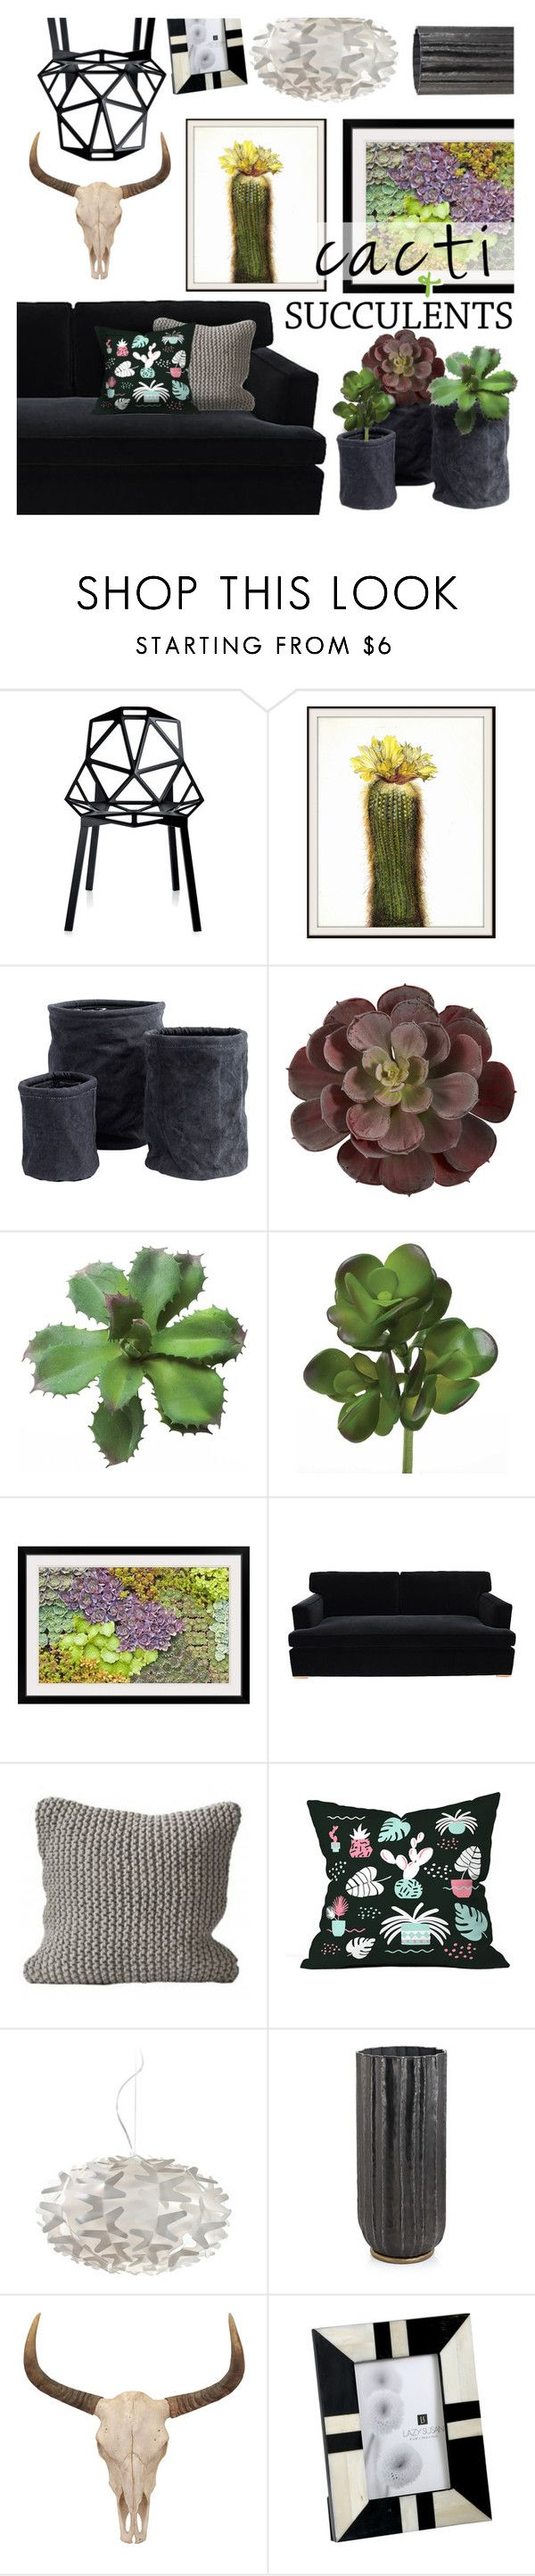 """""""Cacti & Succulents"""" by stacey-lynne on Polyvore featuring interior, interiors, interior design, home, home decor, interior decorating, Magis, WALL, Barclay Butera and Homage"""